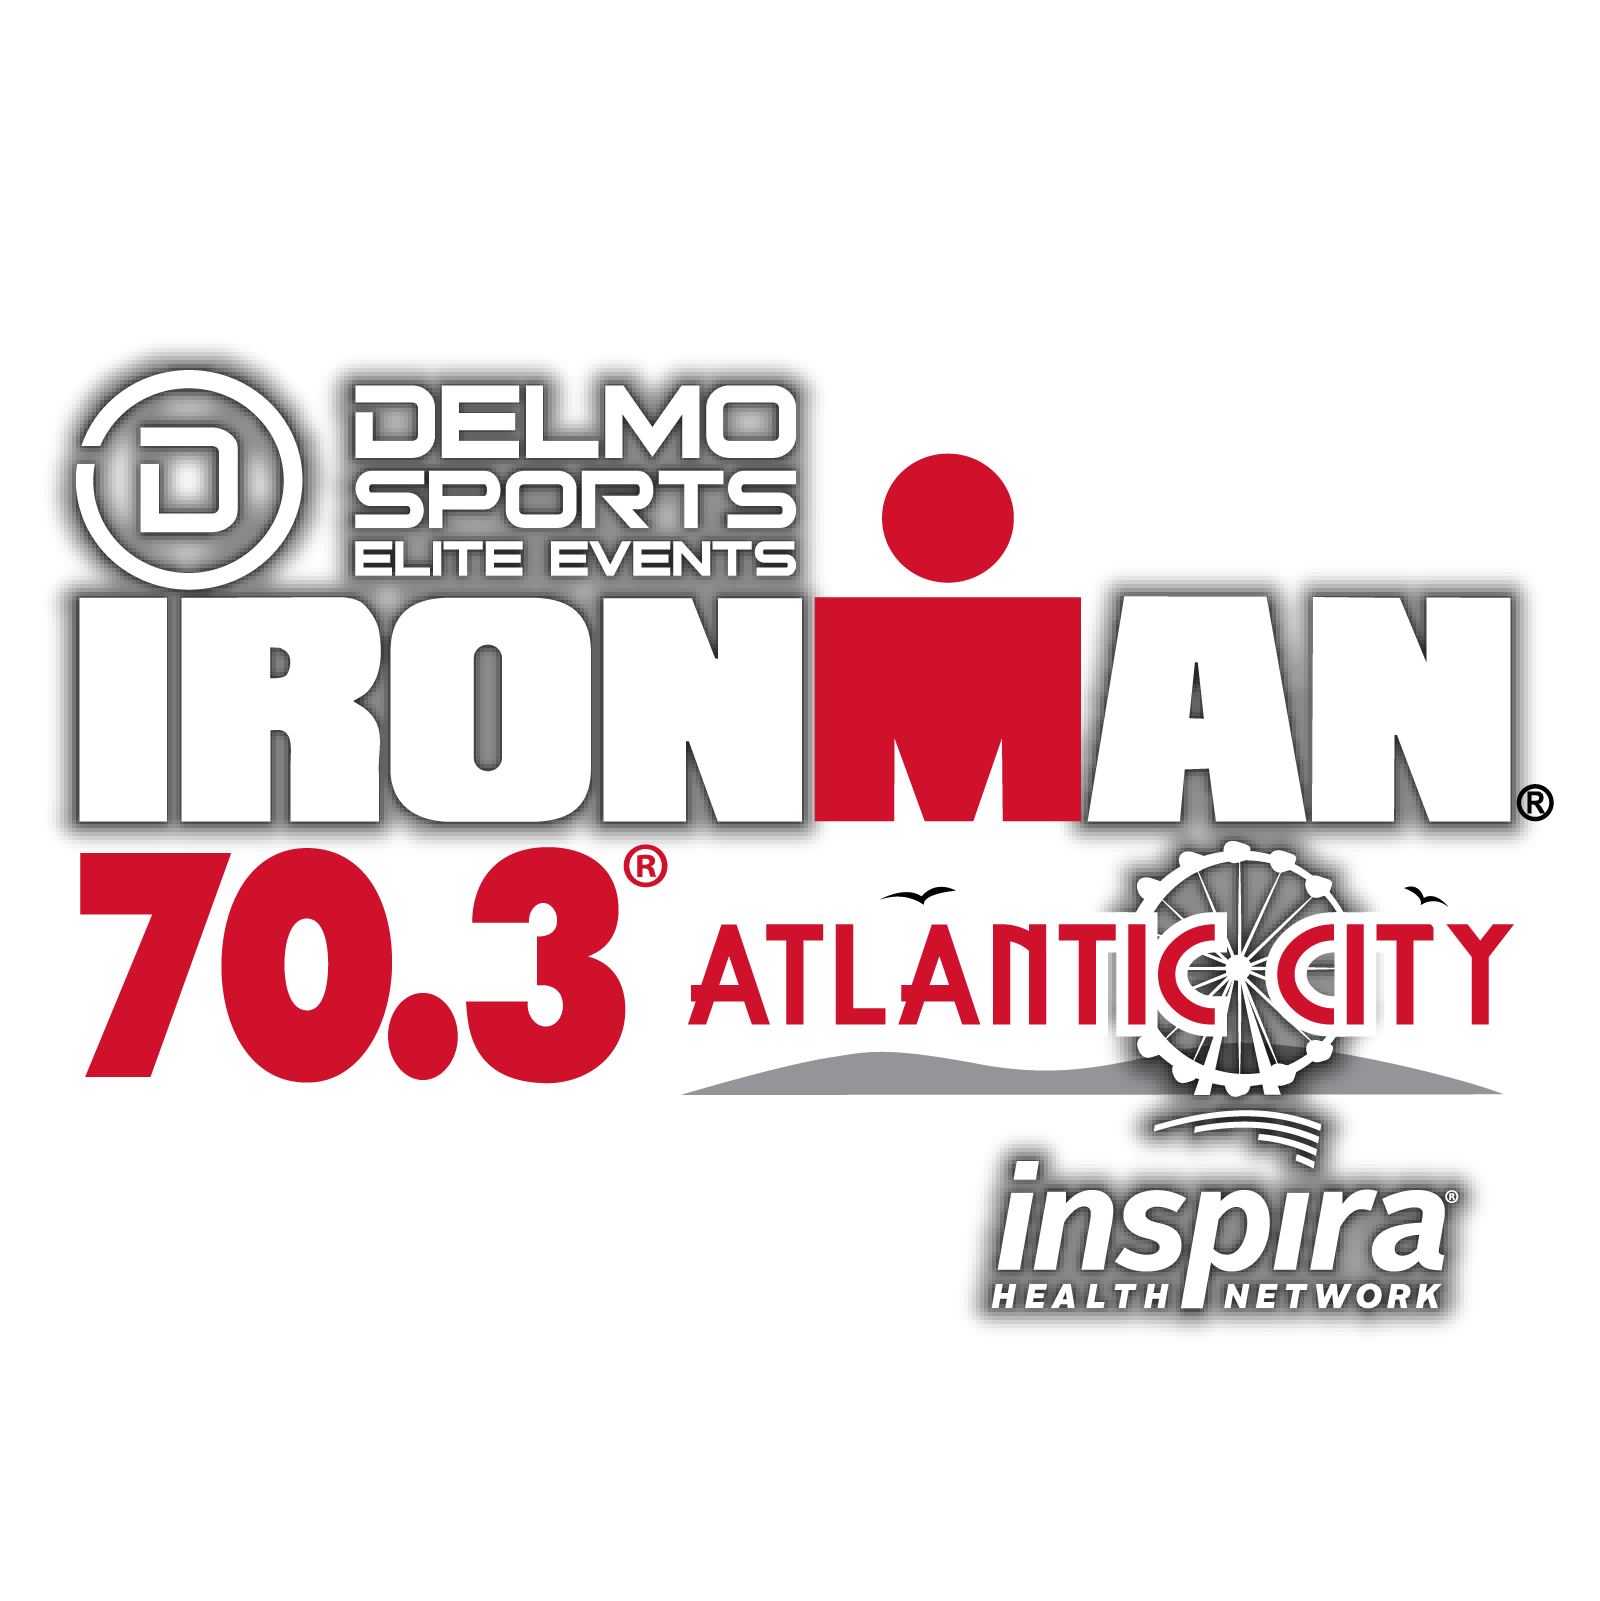 Ironman 703 Atlantic City